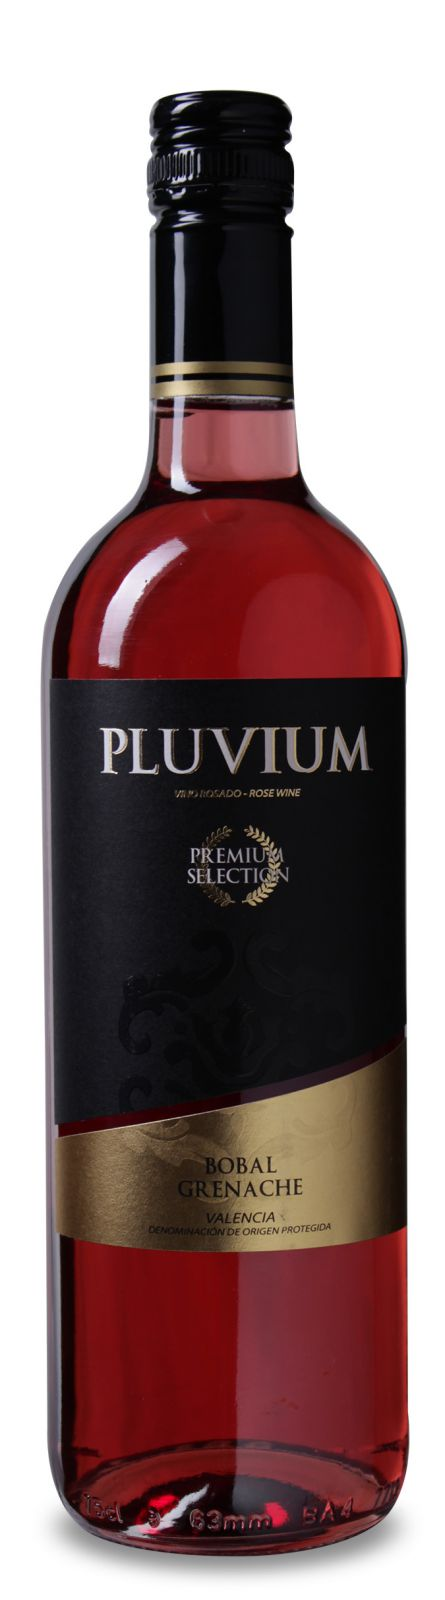 Pluvium Premium selection Bobal-Grenache Valencia DO 2014